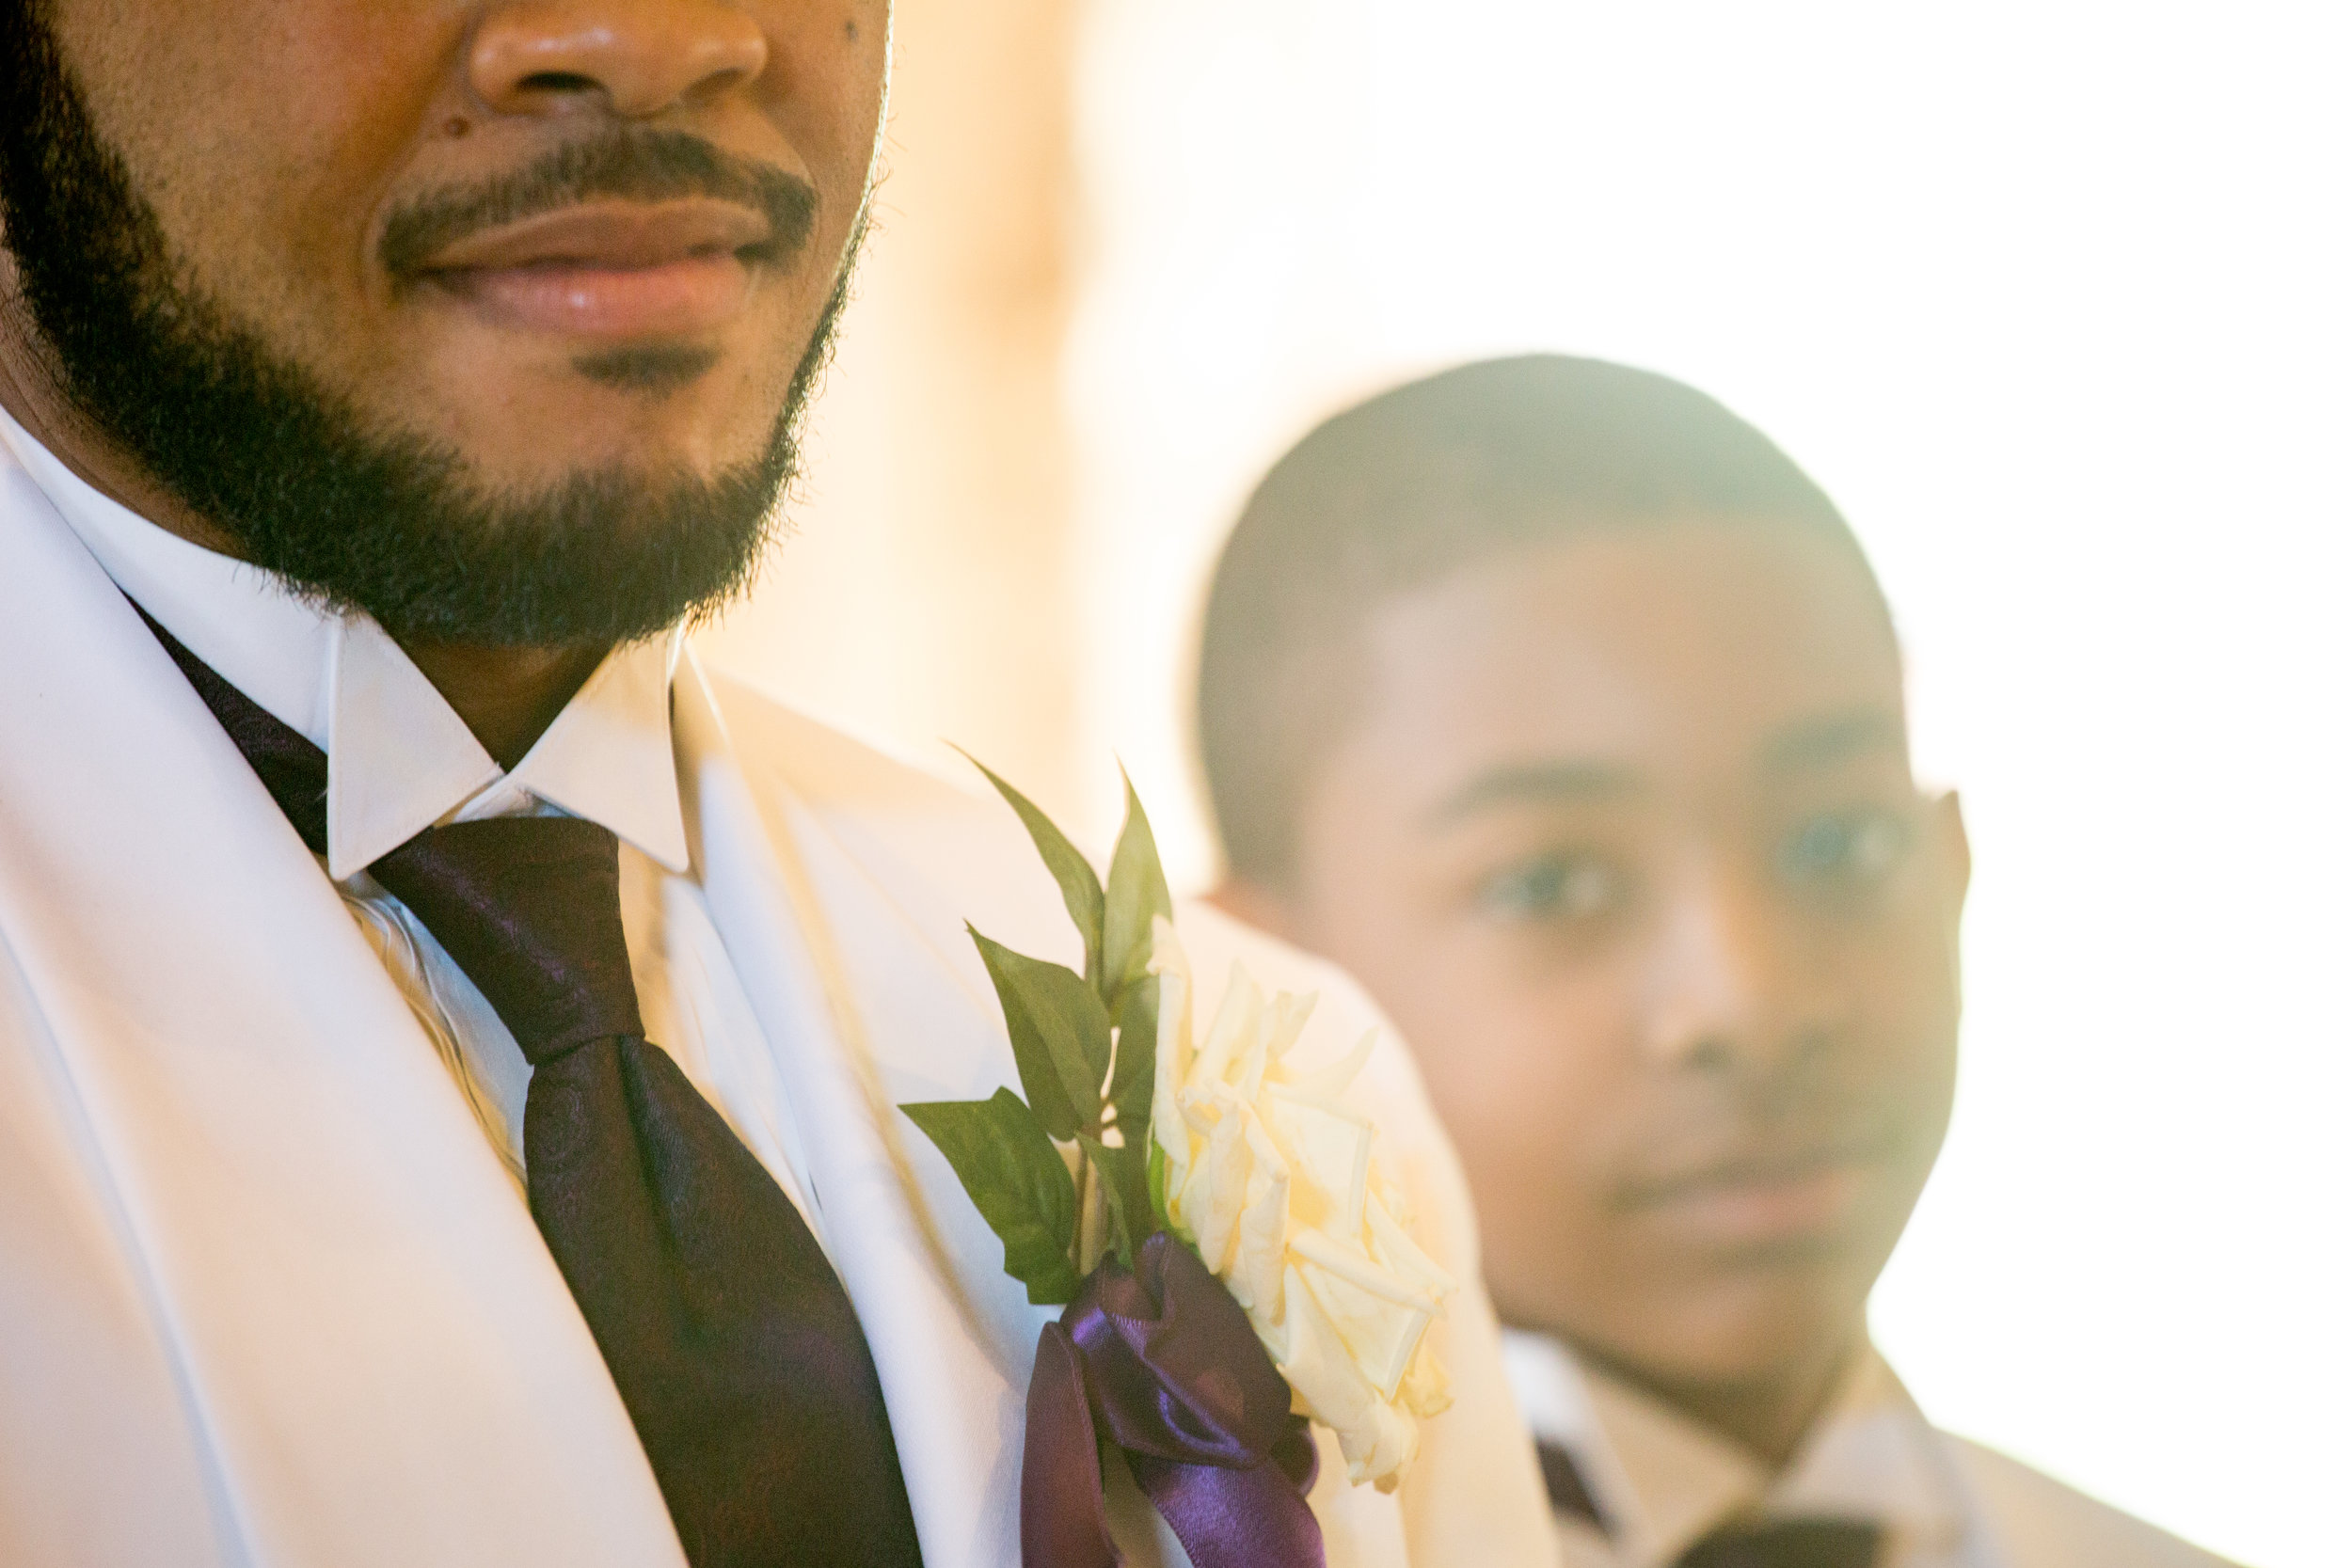 5-24-14_Errol Ebanks_The Finney Wedding_0343.jpg